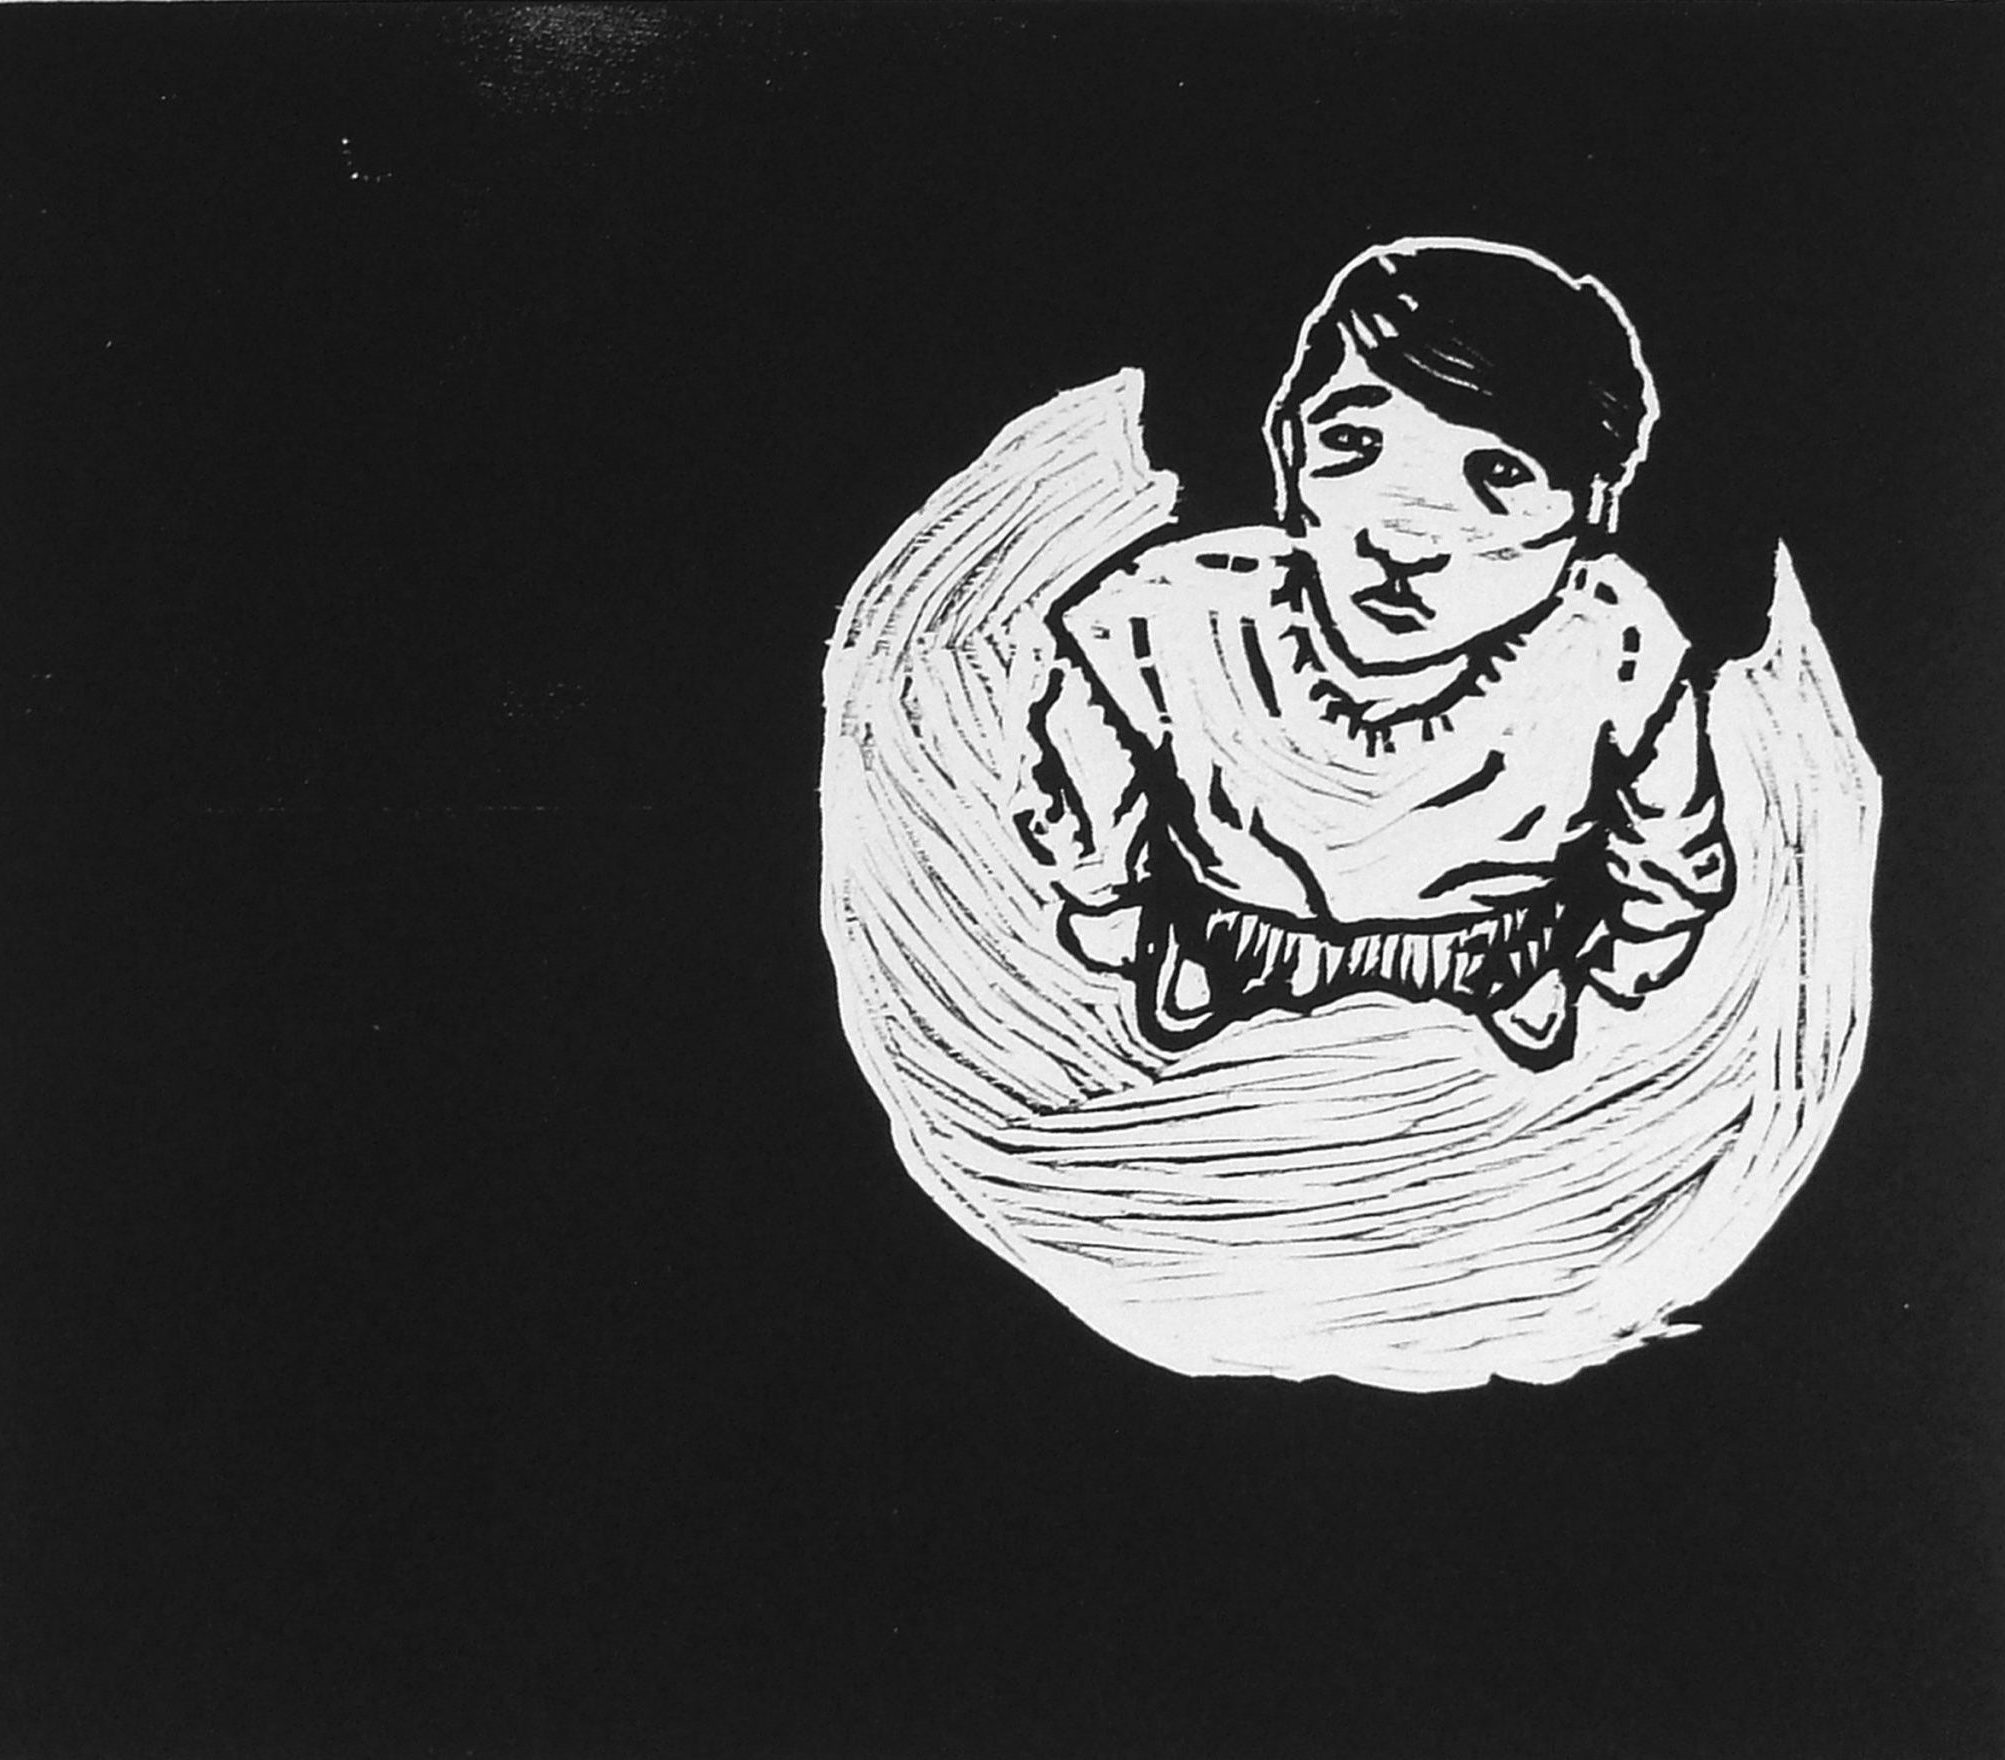 print with black background and small figure on right looking up